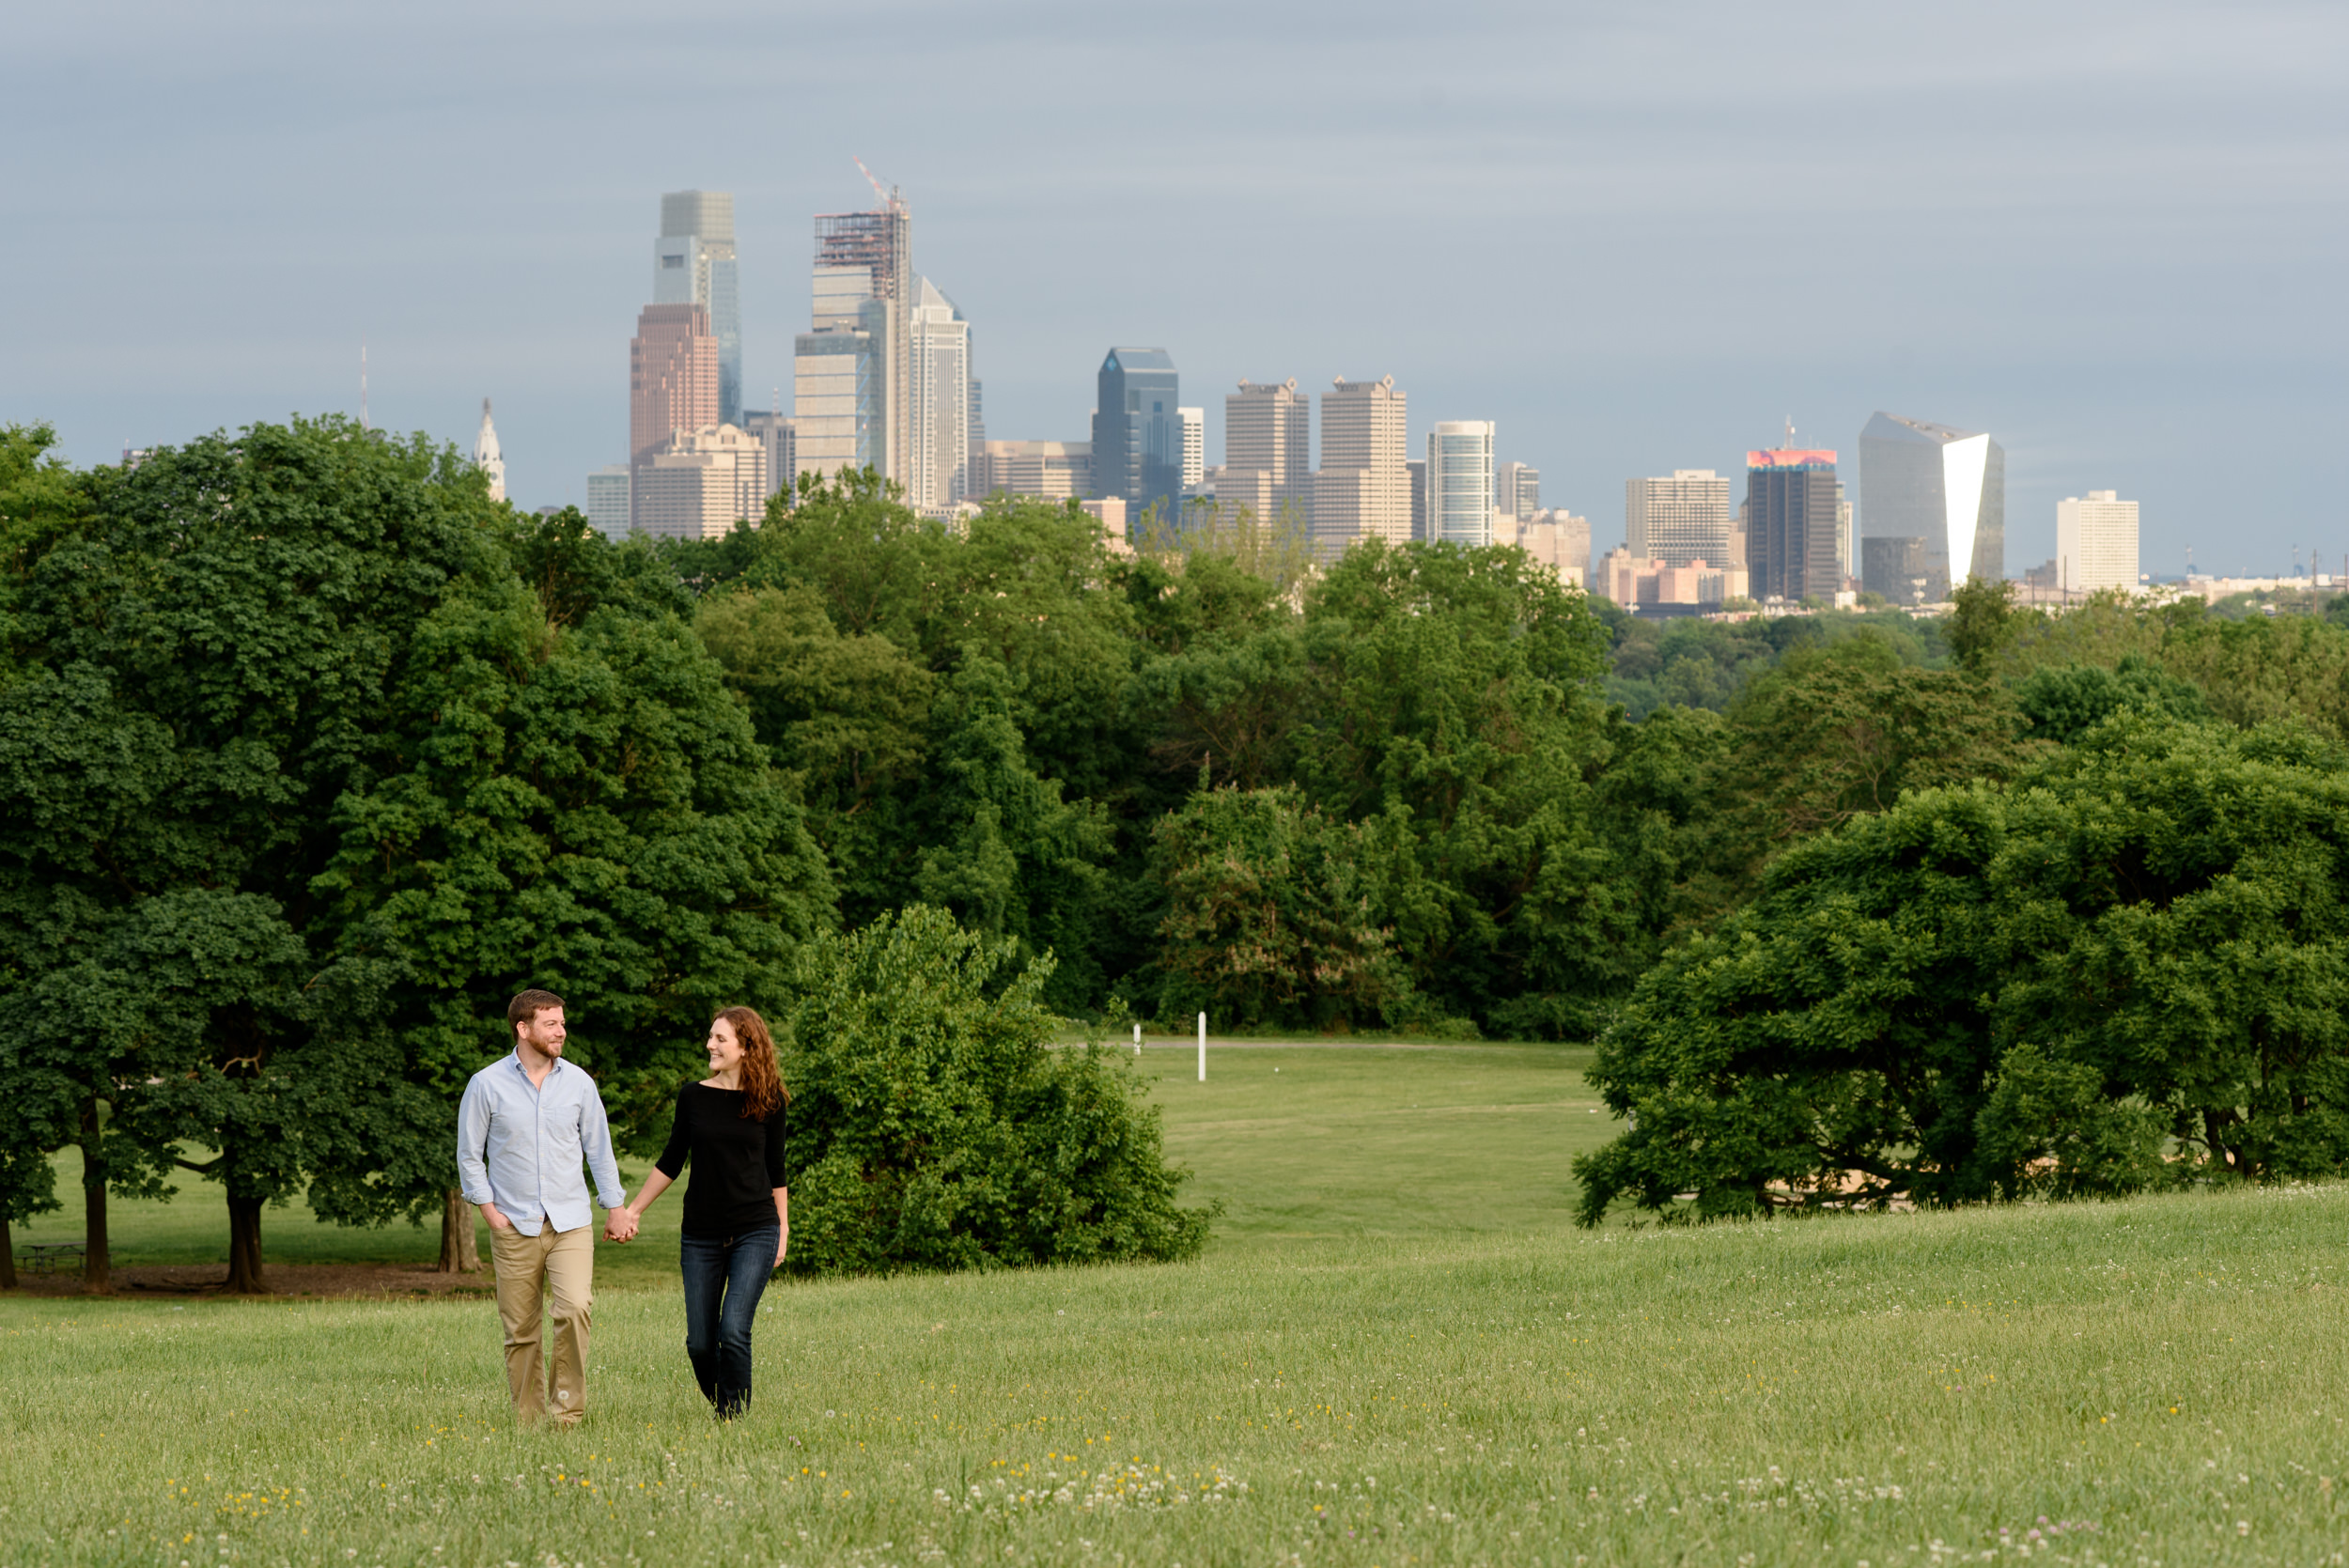 belmont-plateau-engagement-photography